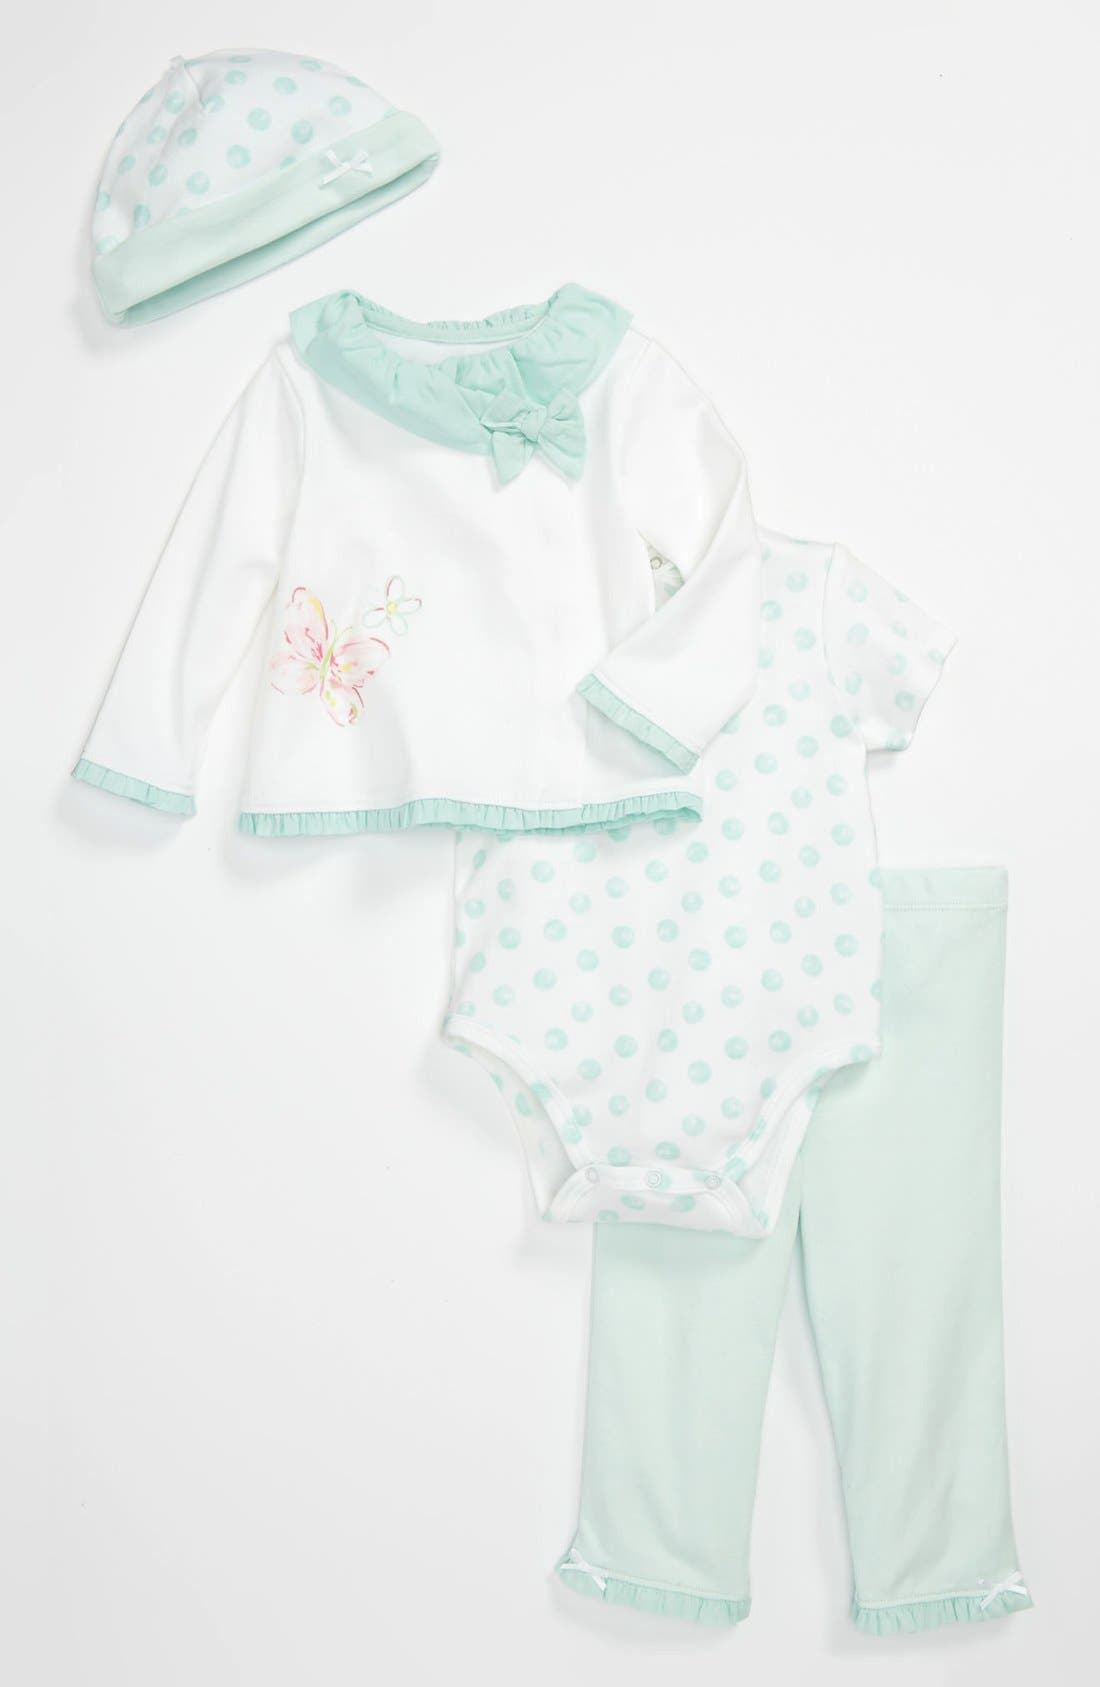 Main Image - Little Me 'Take Me Home' Four Piece Set (Baby)